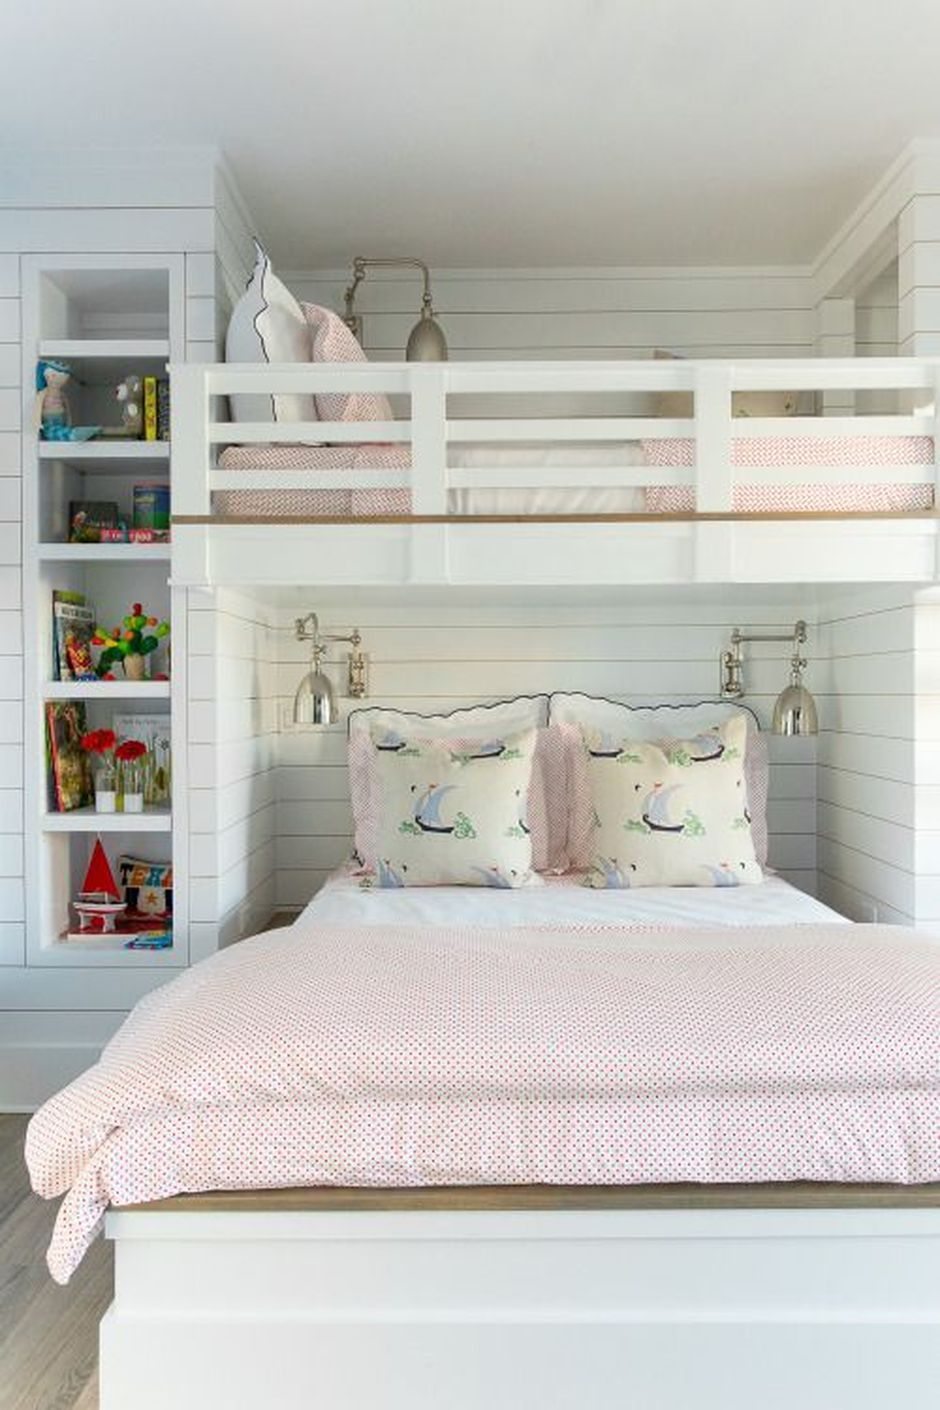 Cool loft bed ideas  Cool Loft Bed Design Ideas for Small Room  Bed design Small rooms